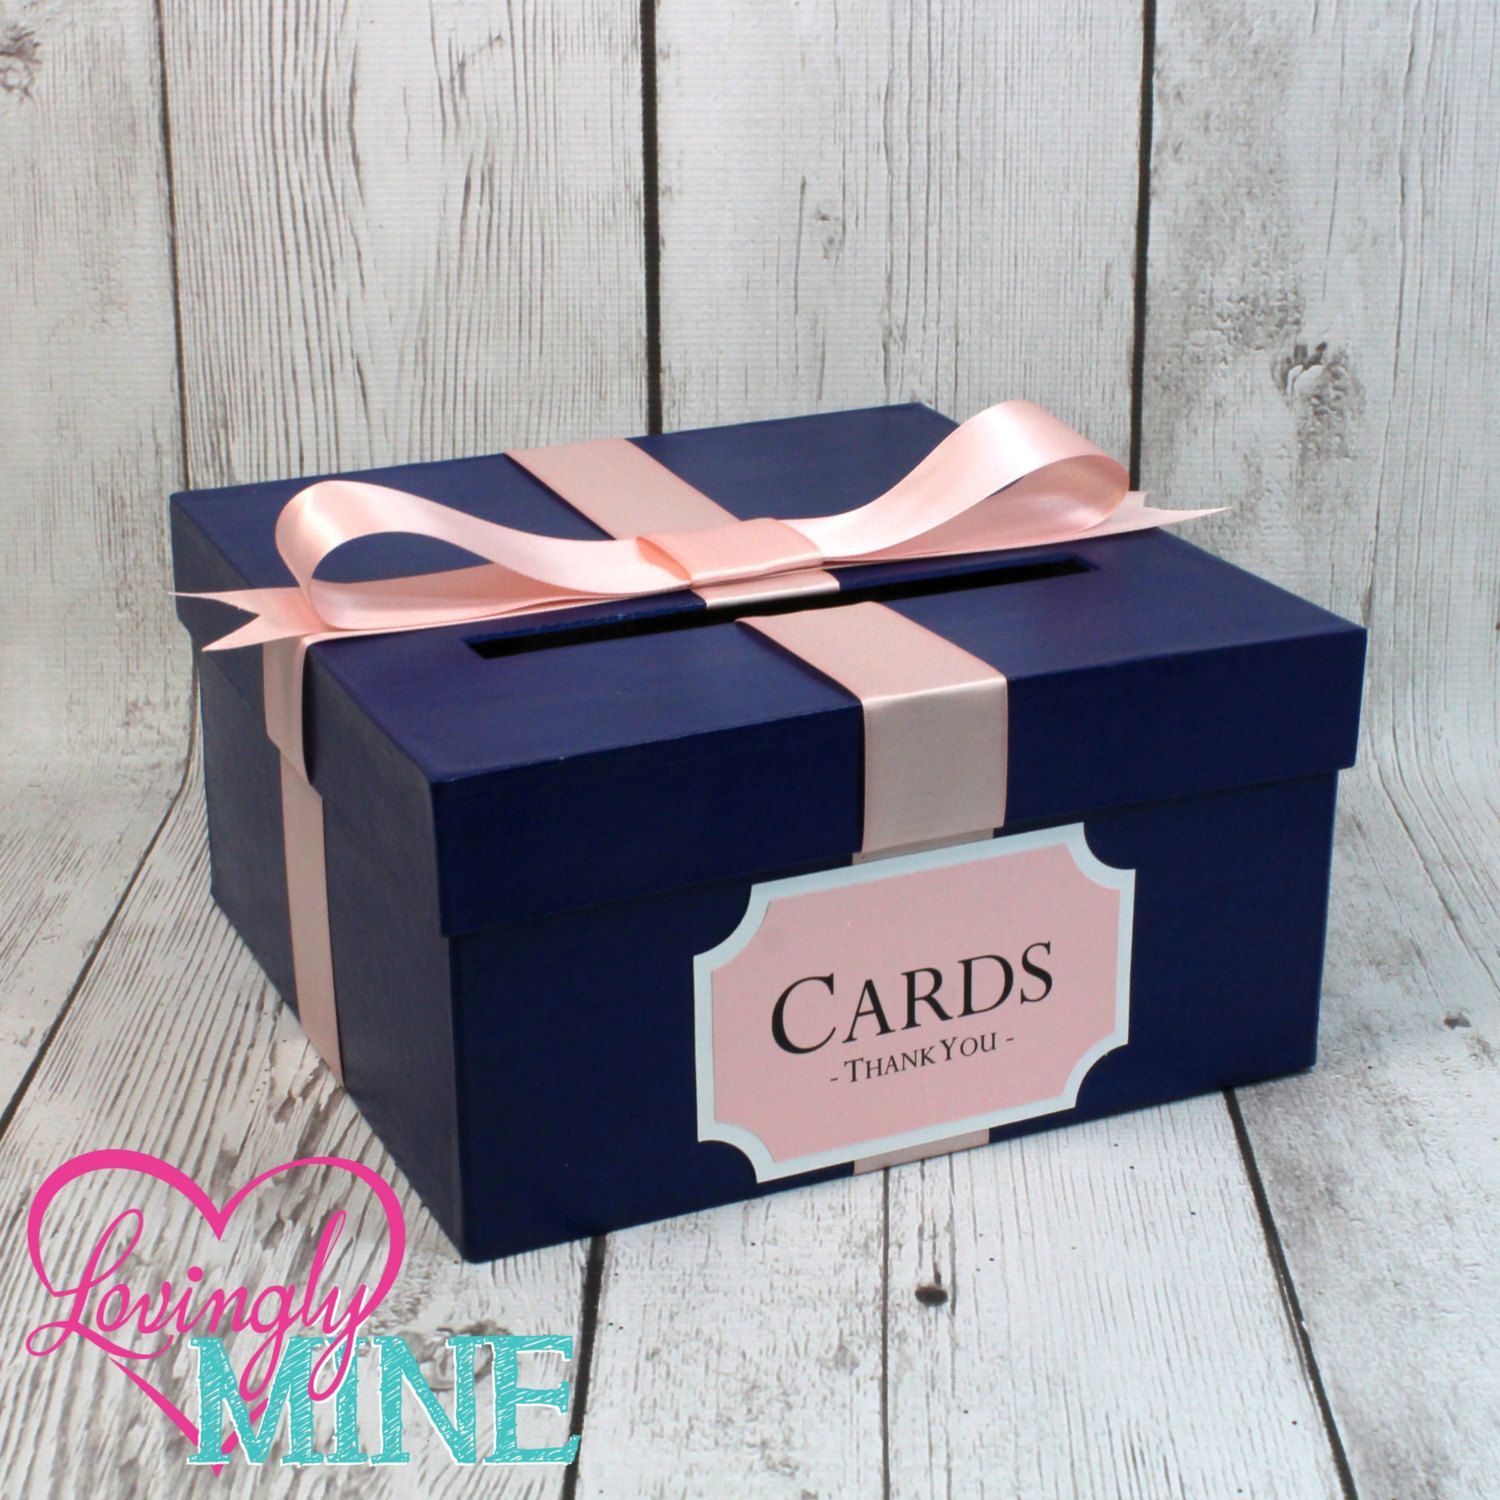 Card Holder Box With Sign In Navy Blue & Blush Pink